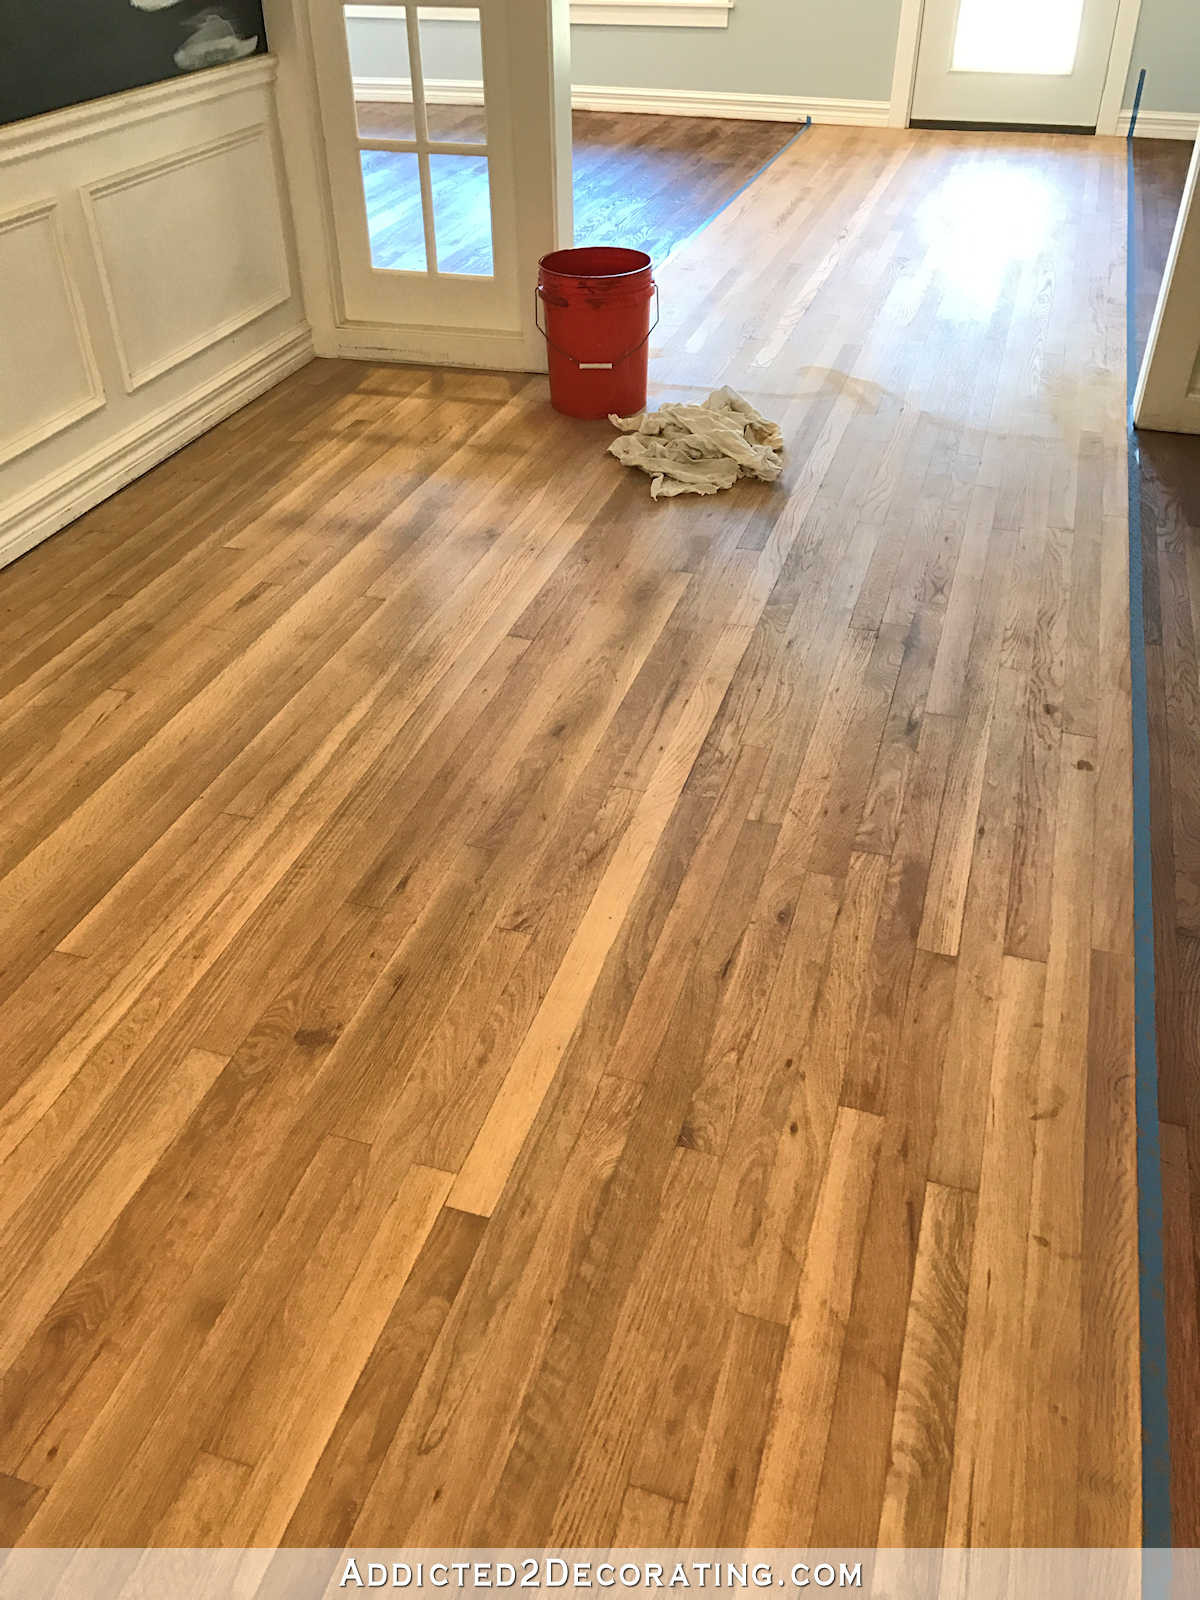 hardwood floor stain colors for red oak of adventures in staining my red oak hardwood floors products process within staining red oak hardwood floors 8 entryway and music room wood conditioner